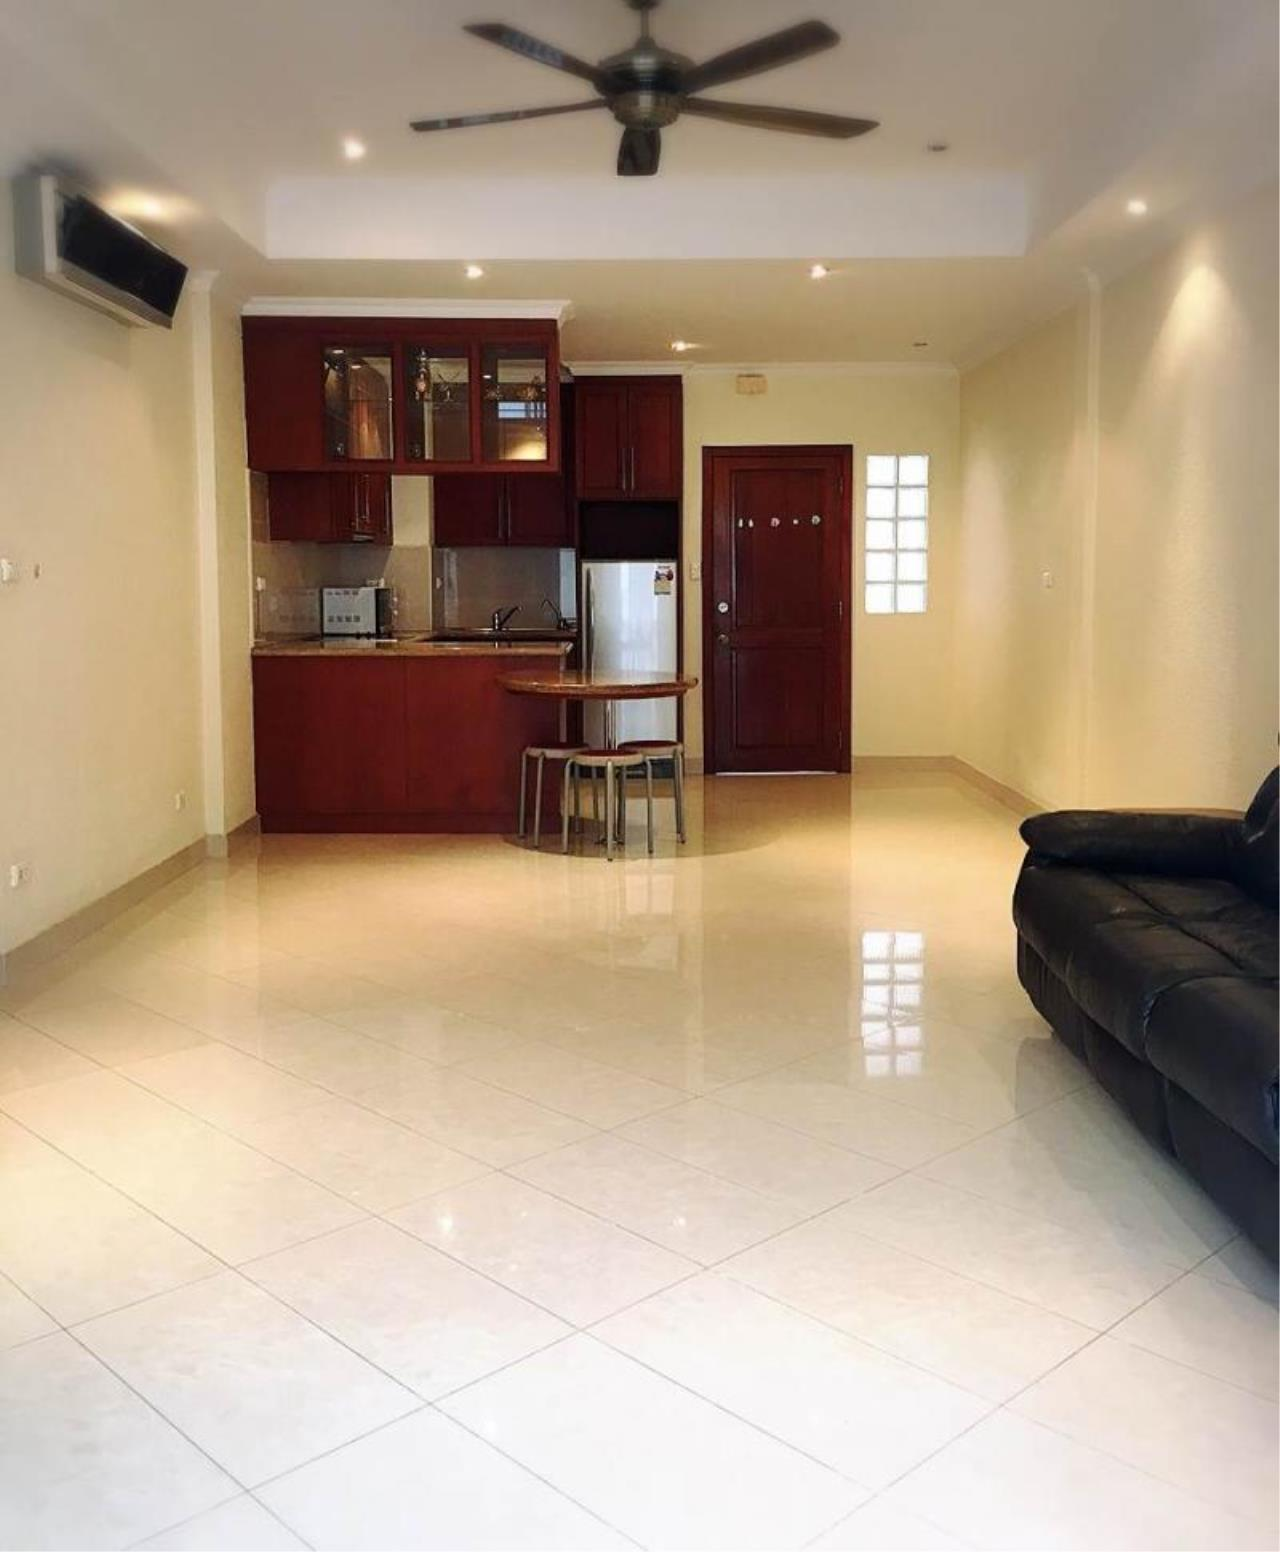 RE/MAX Town & Country Property Agency's Nice 1 bedroom condo in Jomtien 2